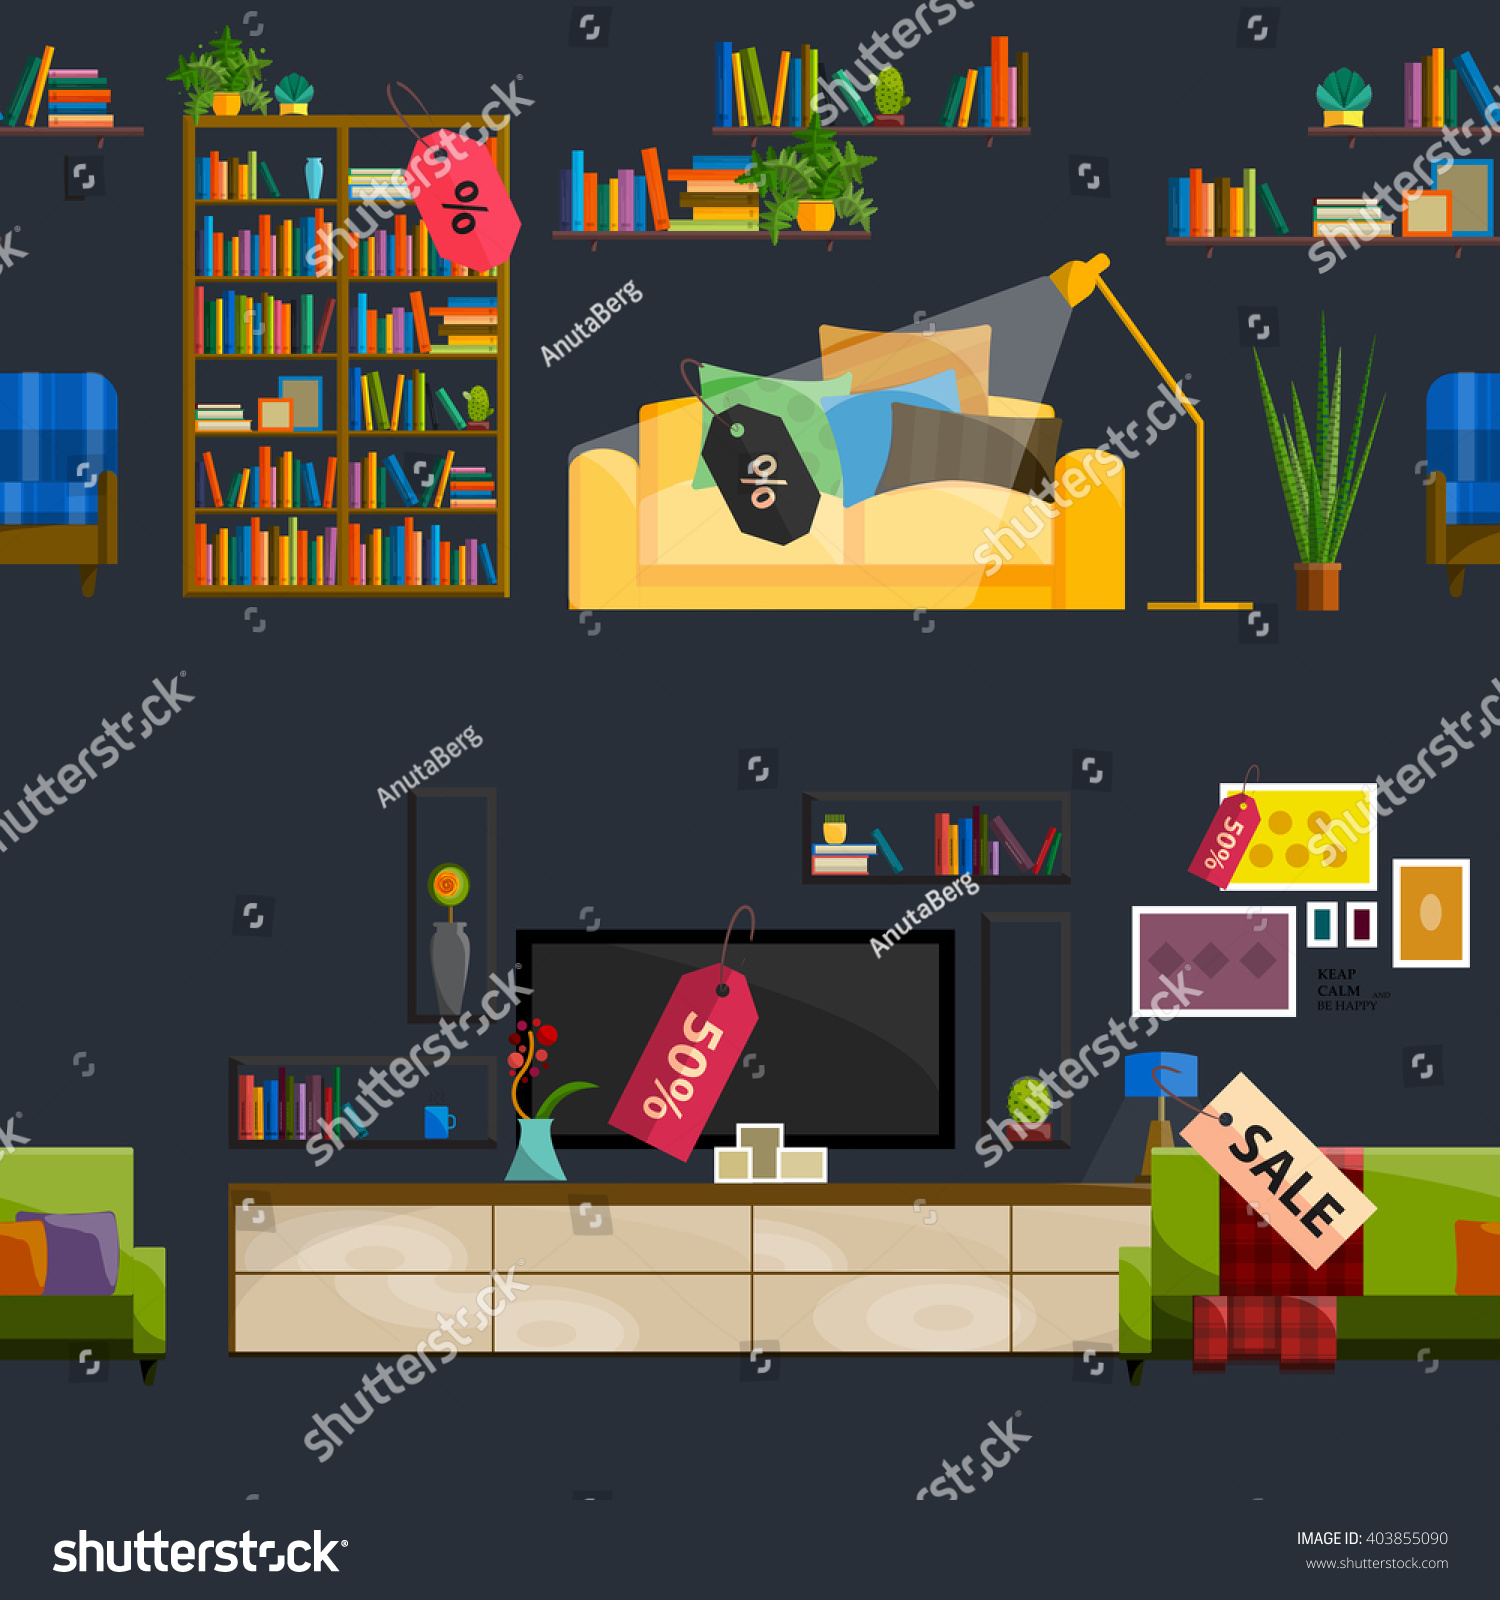 Furniture Shop Super Sale Vector Illustration. Furniture Shop Super Sale Vector Illustration Stock Vector